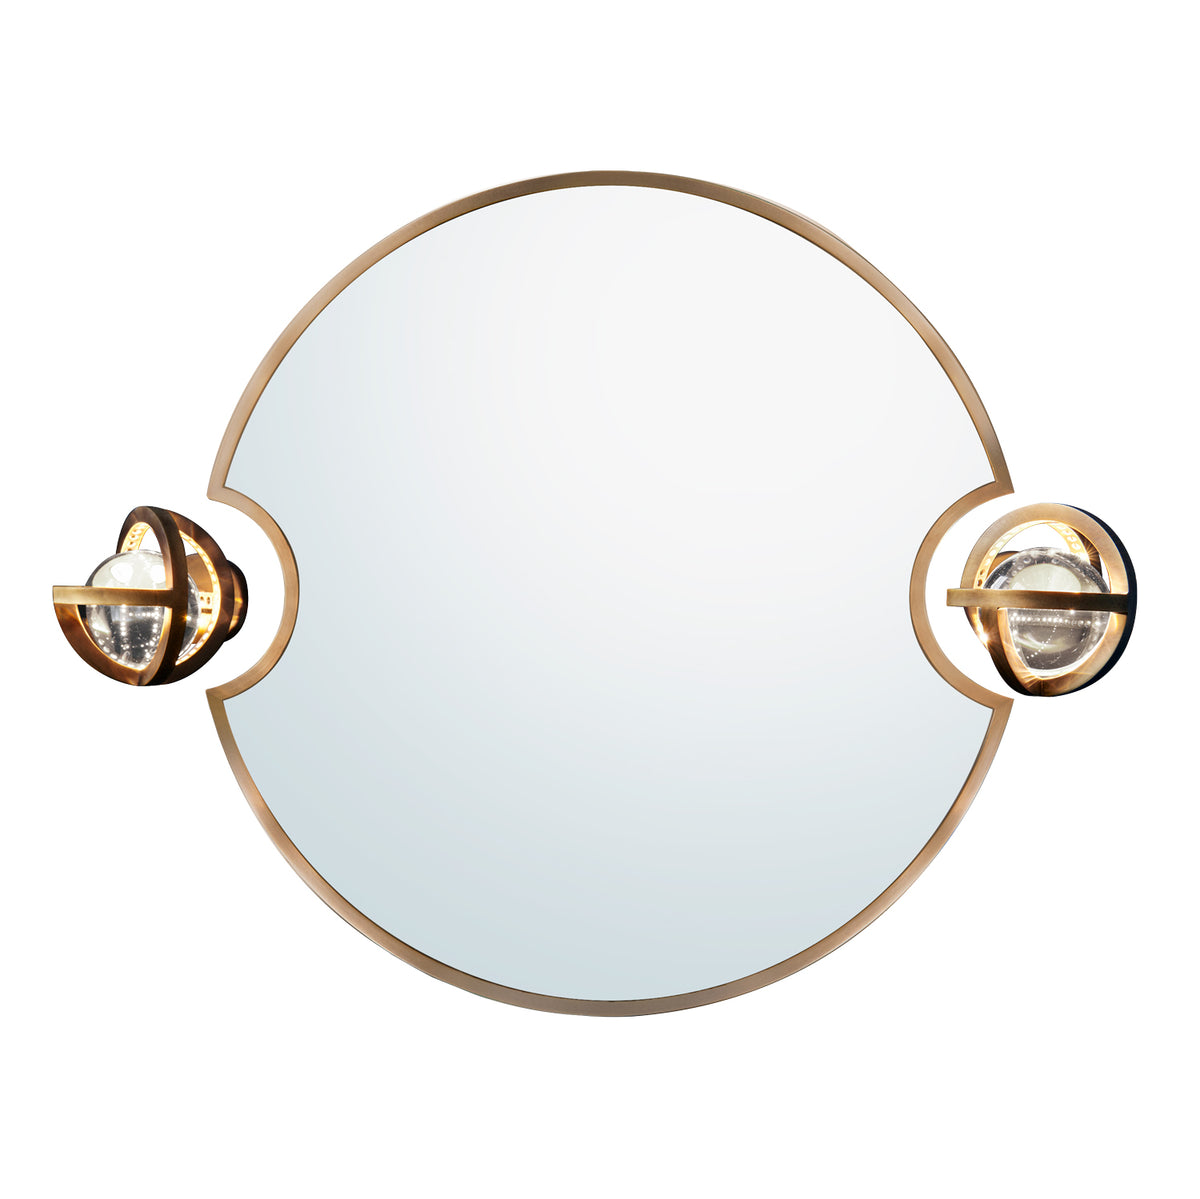 PLANETARIA SINGLE MIRROR